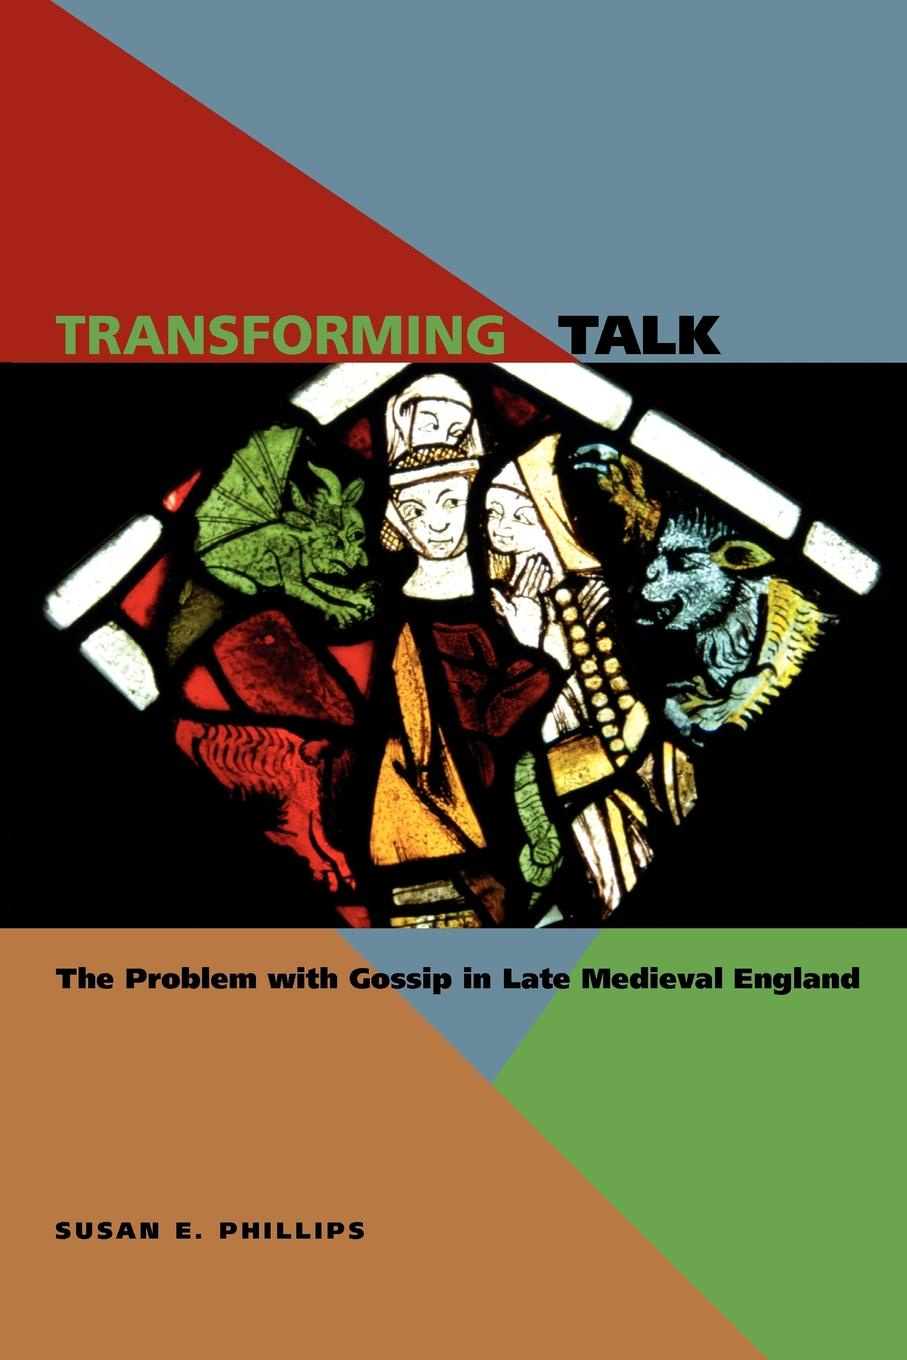 лучшая цена Susan E. Phillips Transforming Talk. The Problem with Gossip in Late Medieval England